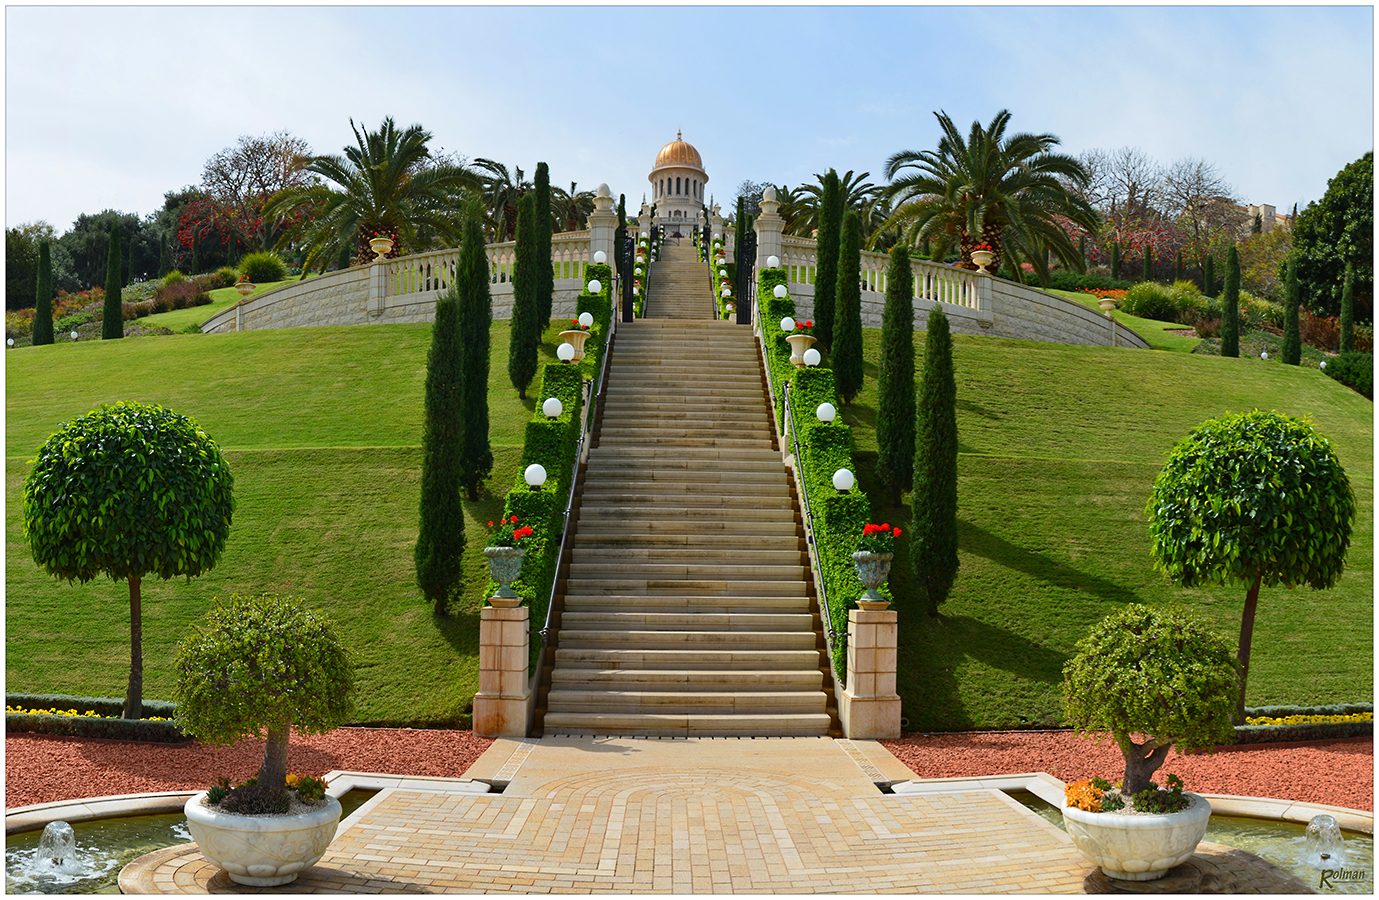 bahai garden am berg karmel in haifa israel foto bild landschaft garten. Black Bedroom Furniture Sets. Home Design Ideas